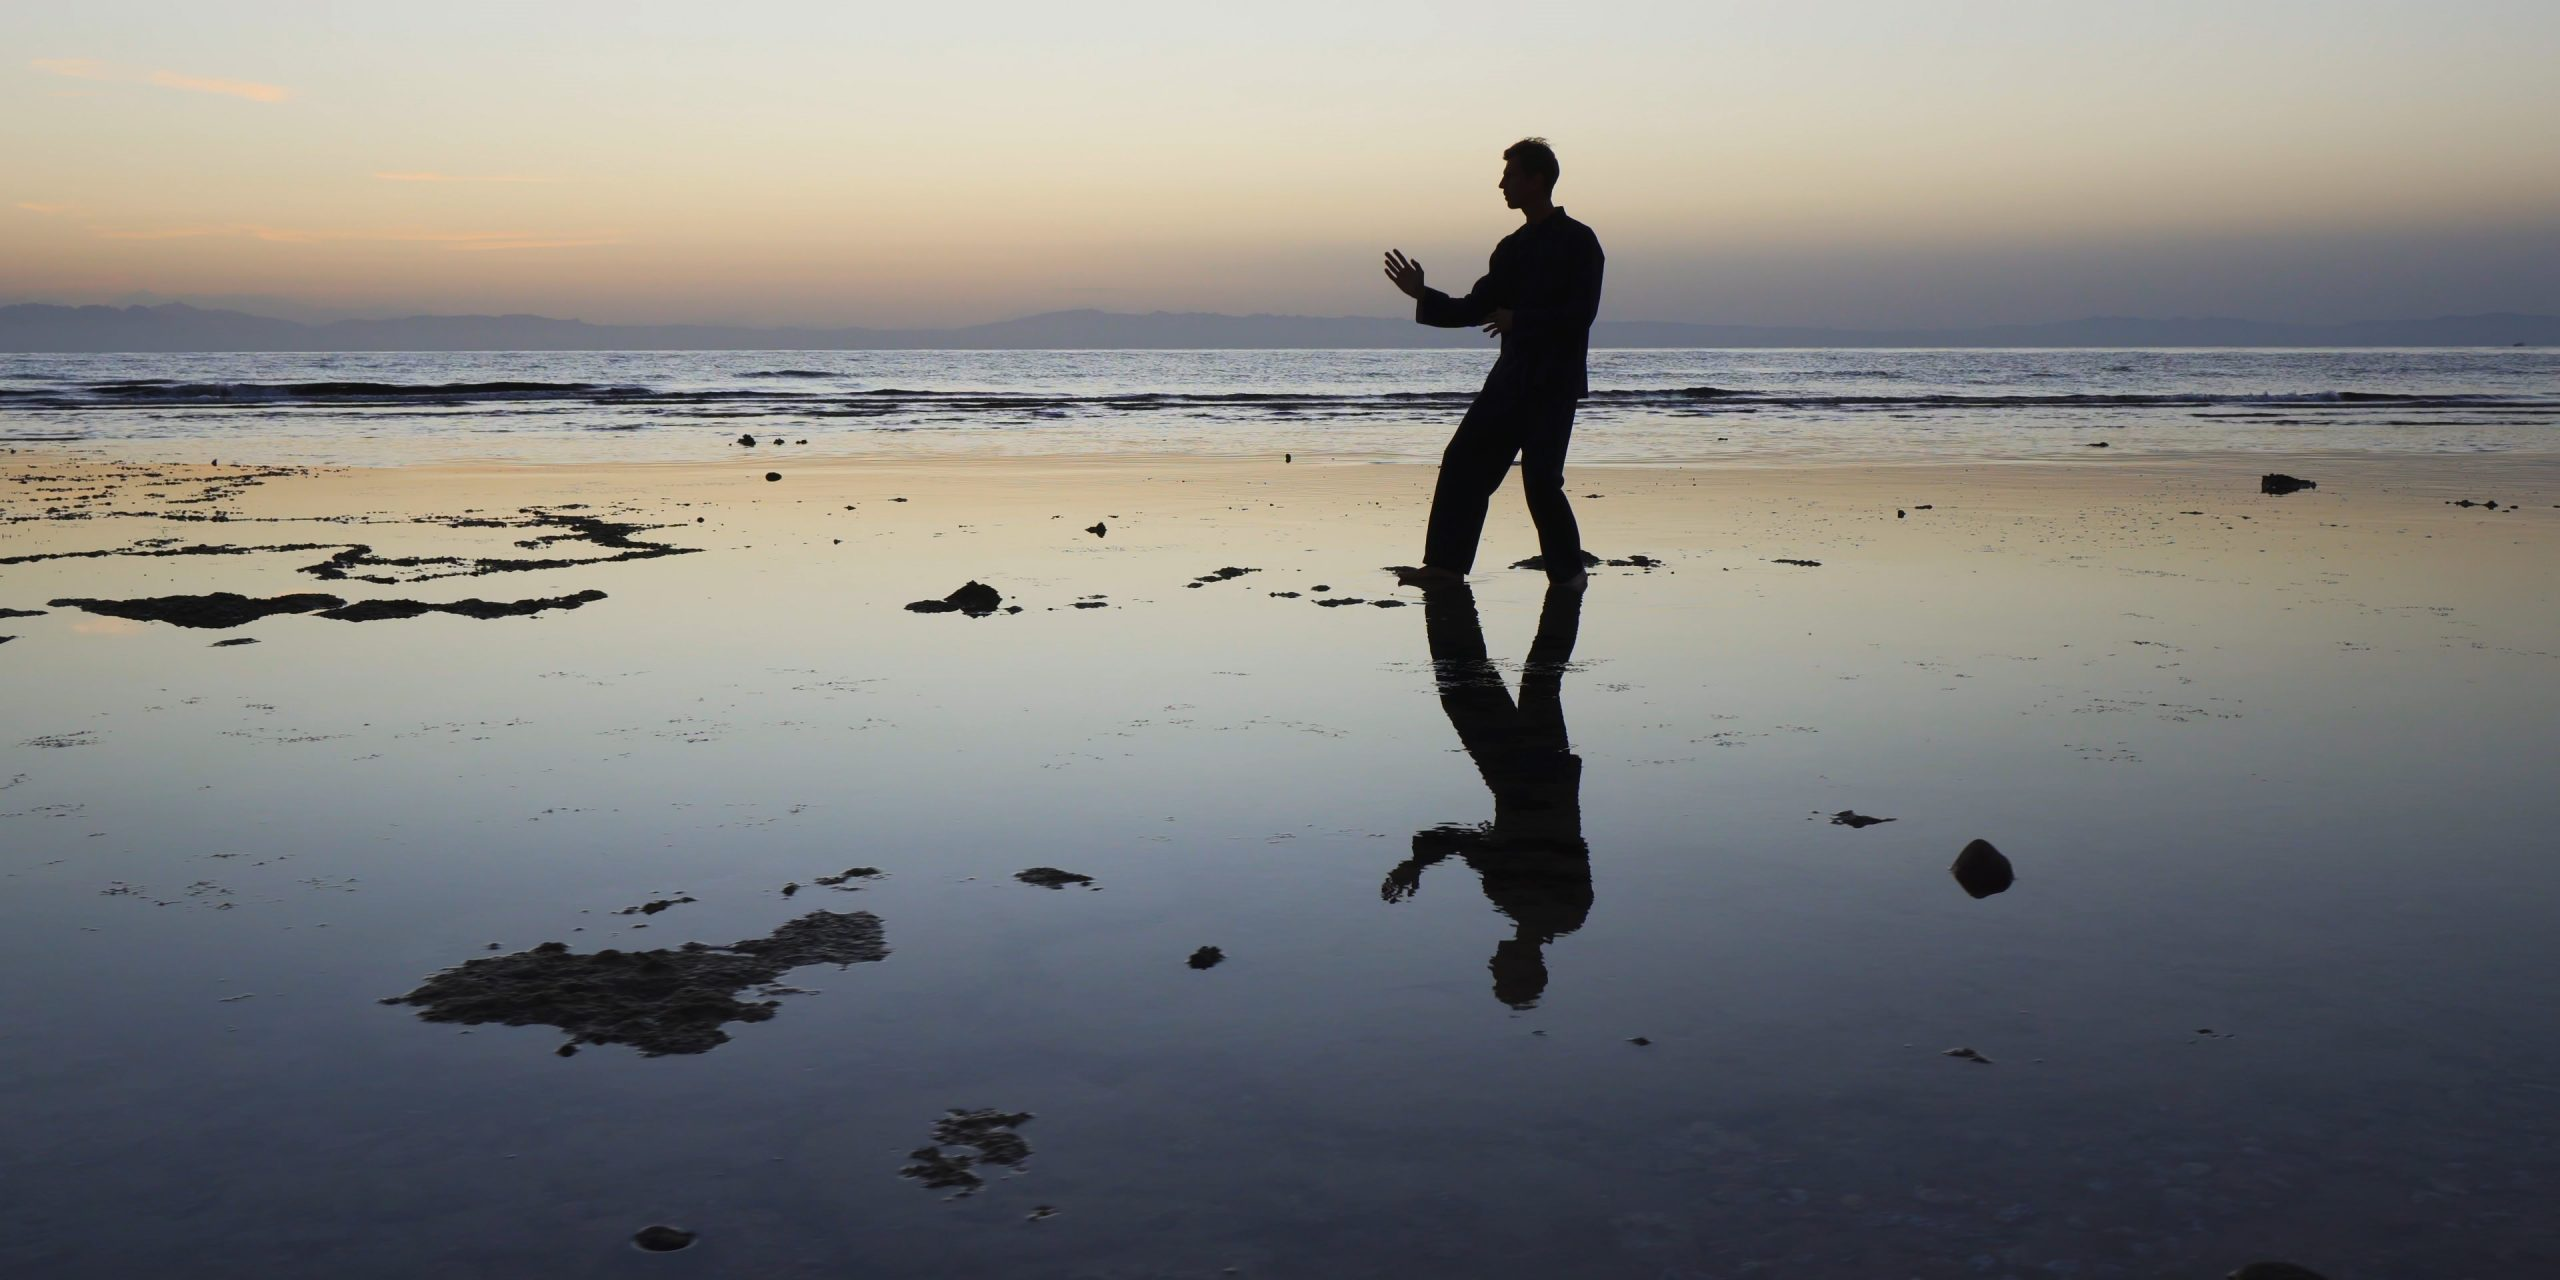 Silhouette of man practiceing qigong exercises at sunset by the sea.